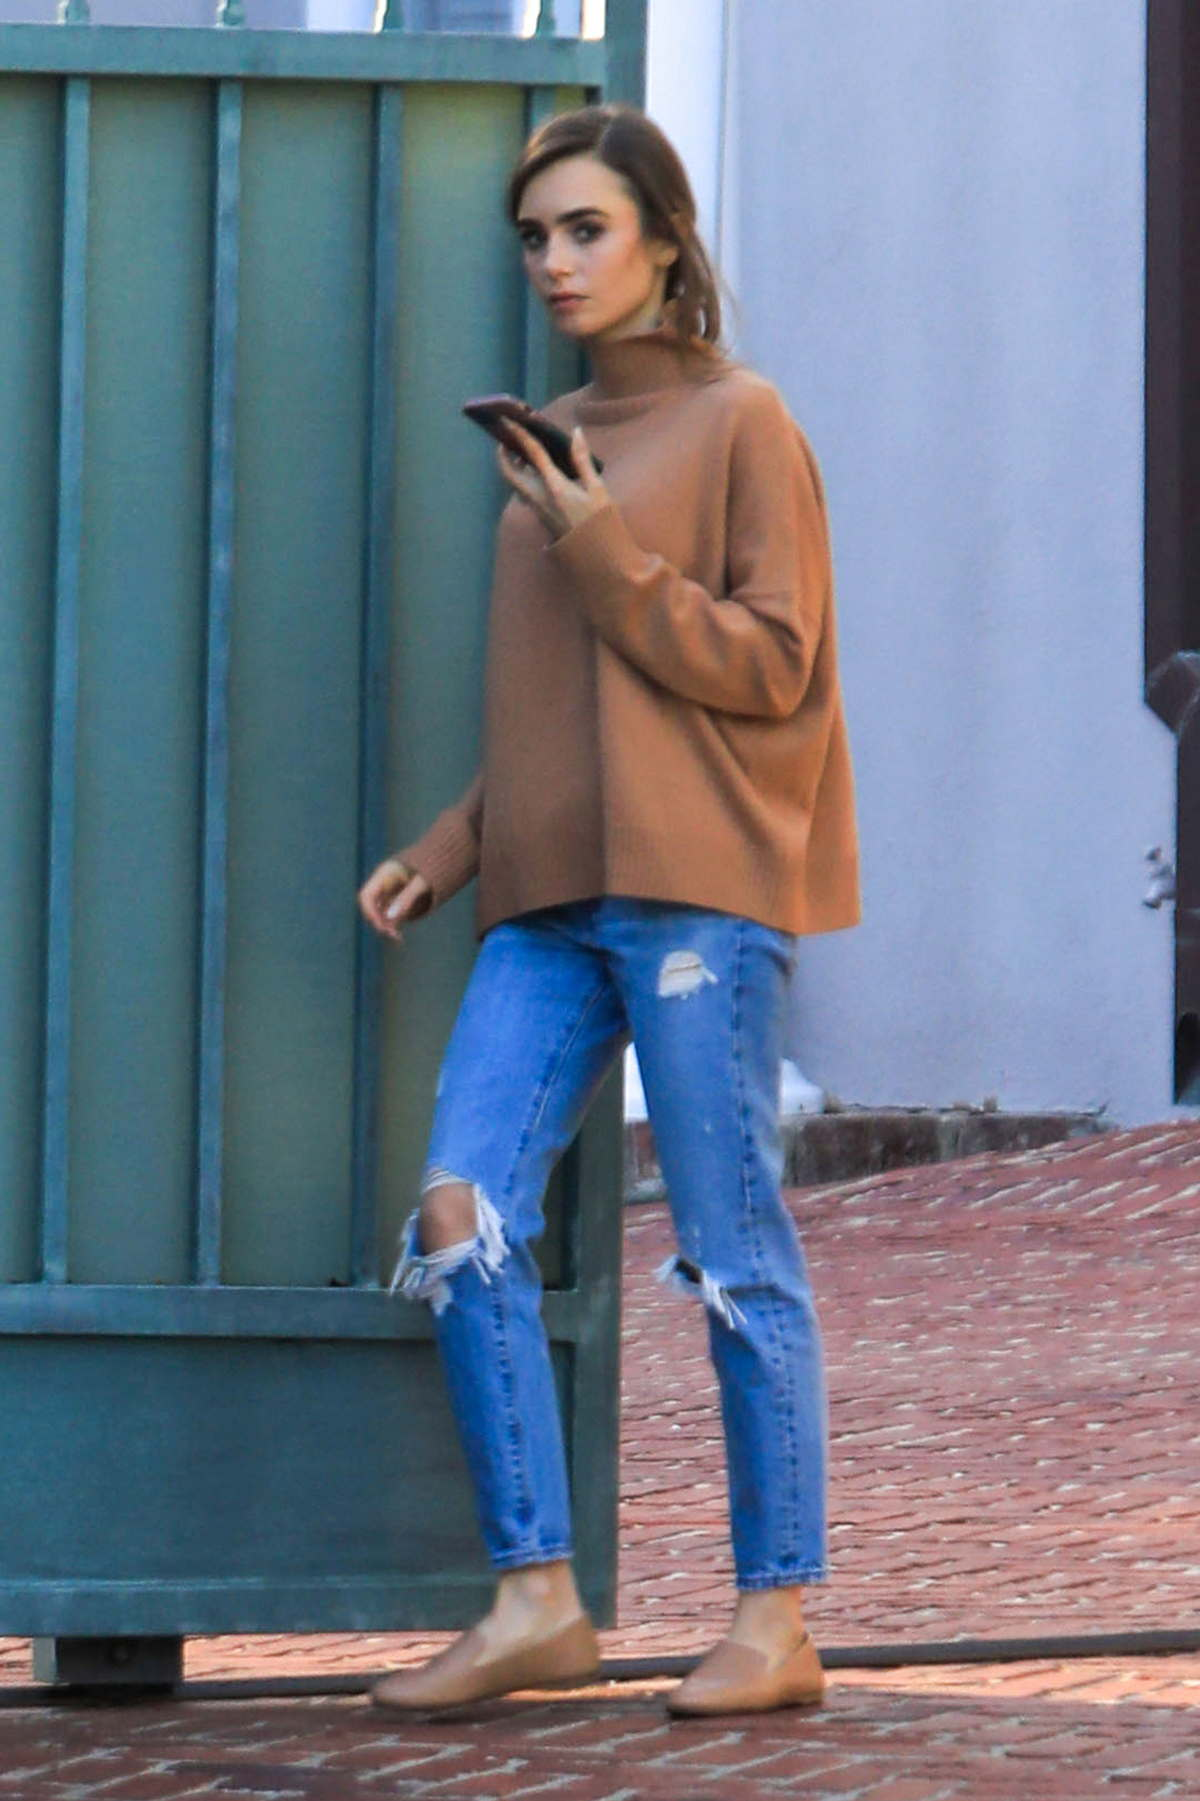 Lily Collins chats on her phone as she steps out wearing a brown sweater in Beverly Hills, California